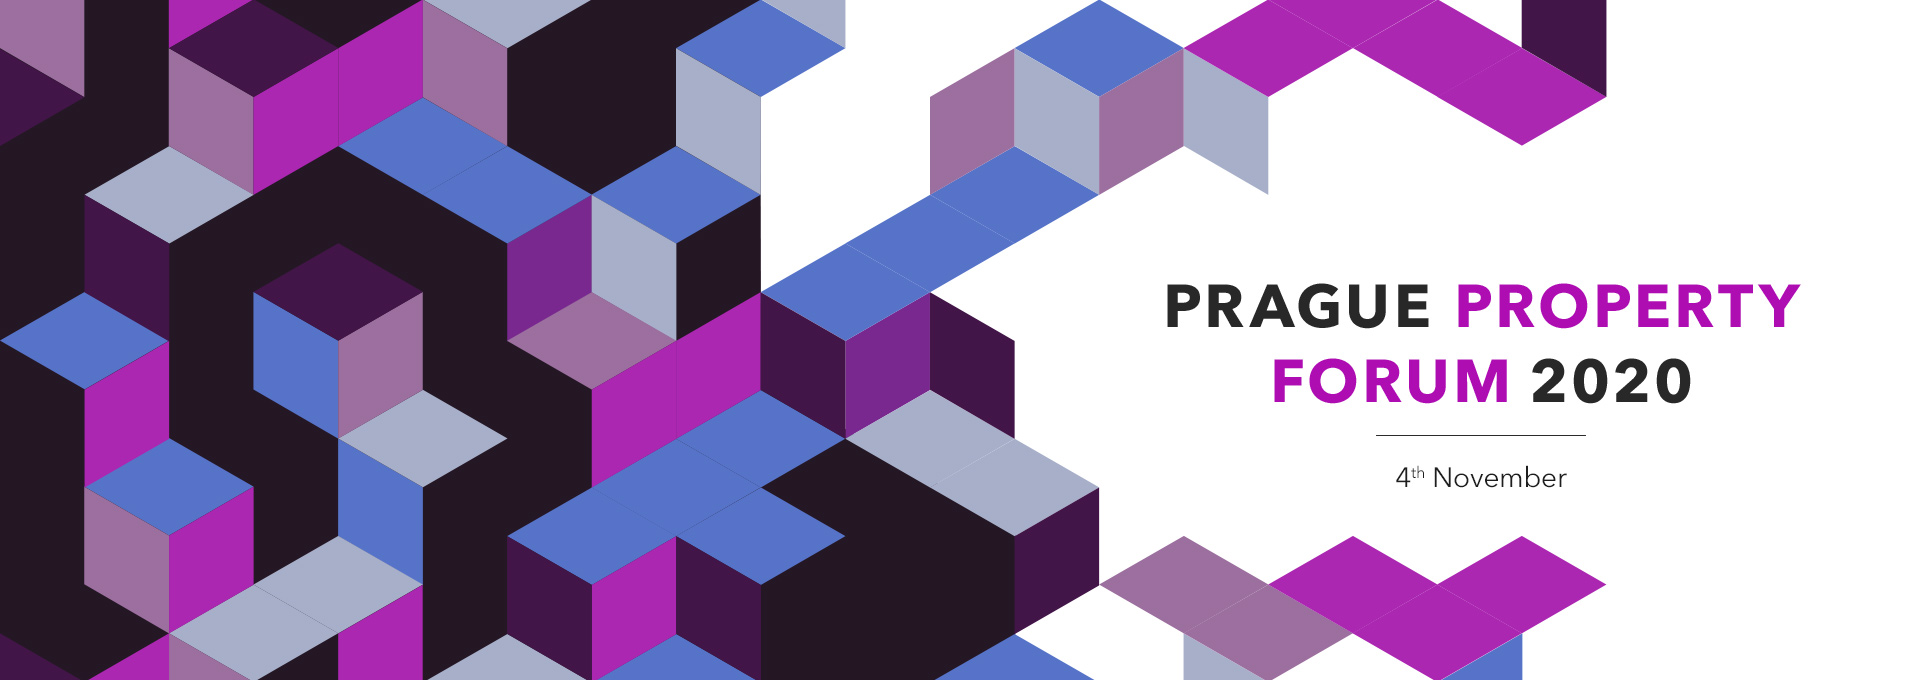 Prague Property Forum 2020